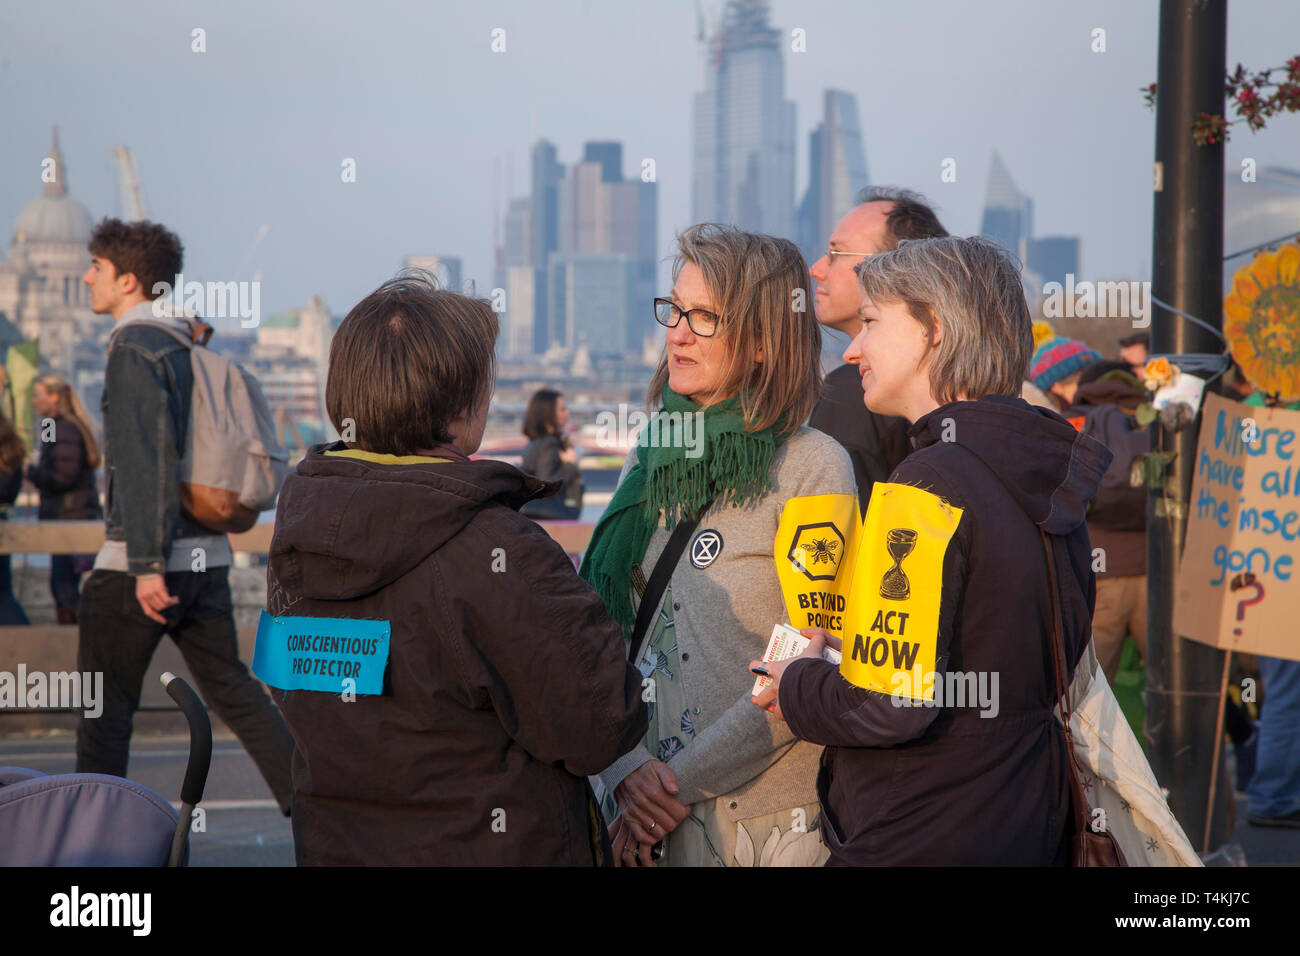 "A ""Conscientious Protector"" on Waterloo Bridge for the Extinction Rebellion demonstration Stock Photo"